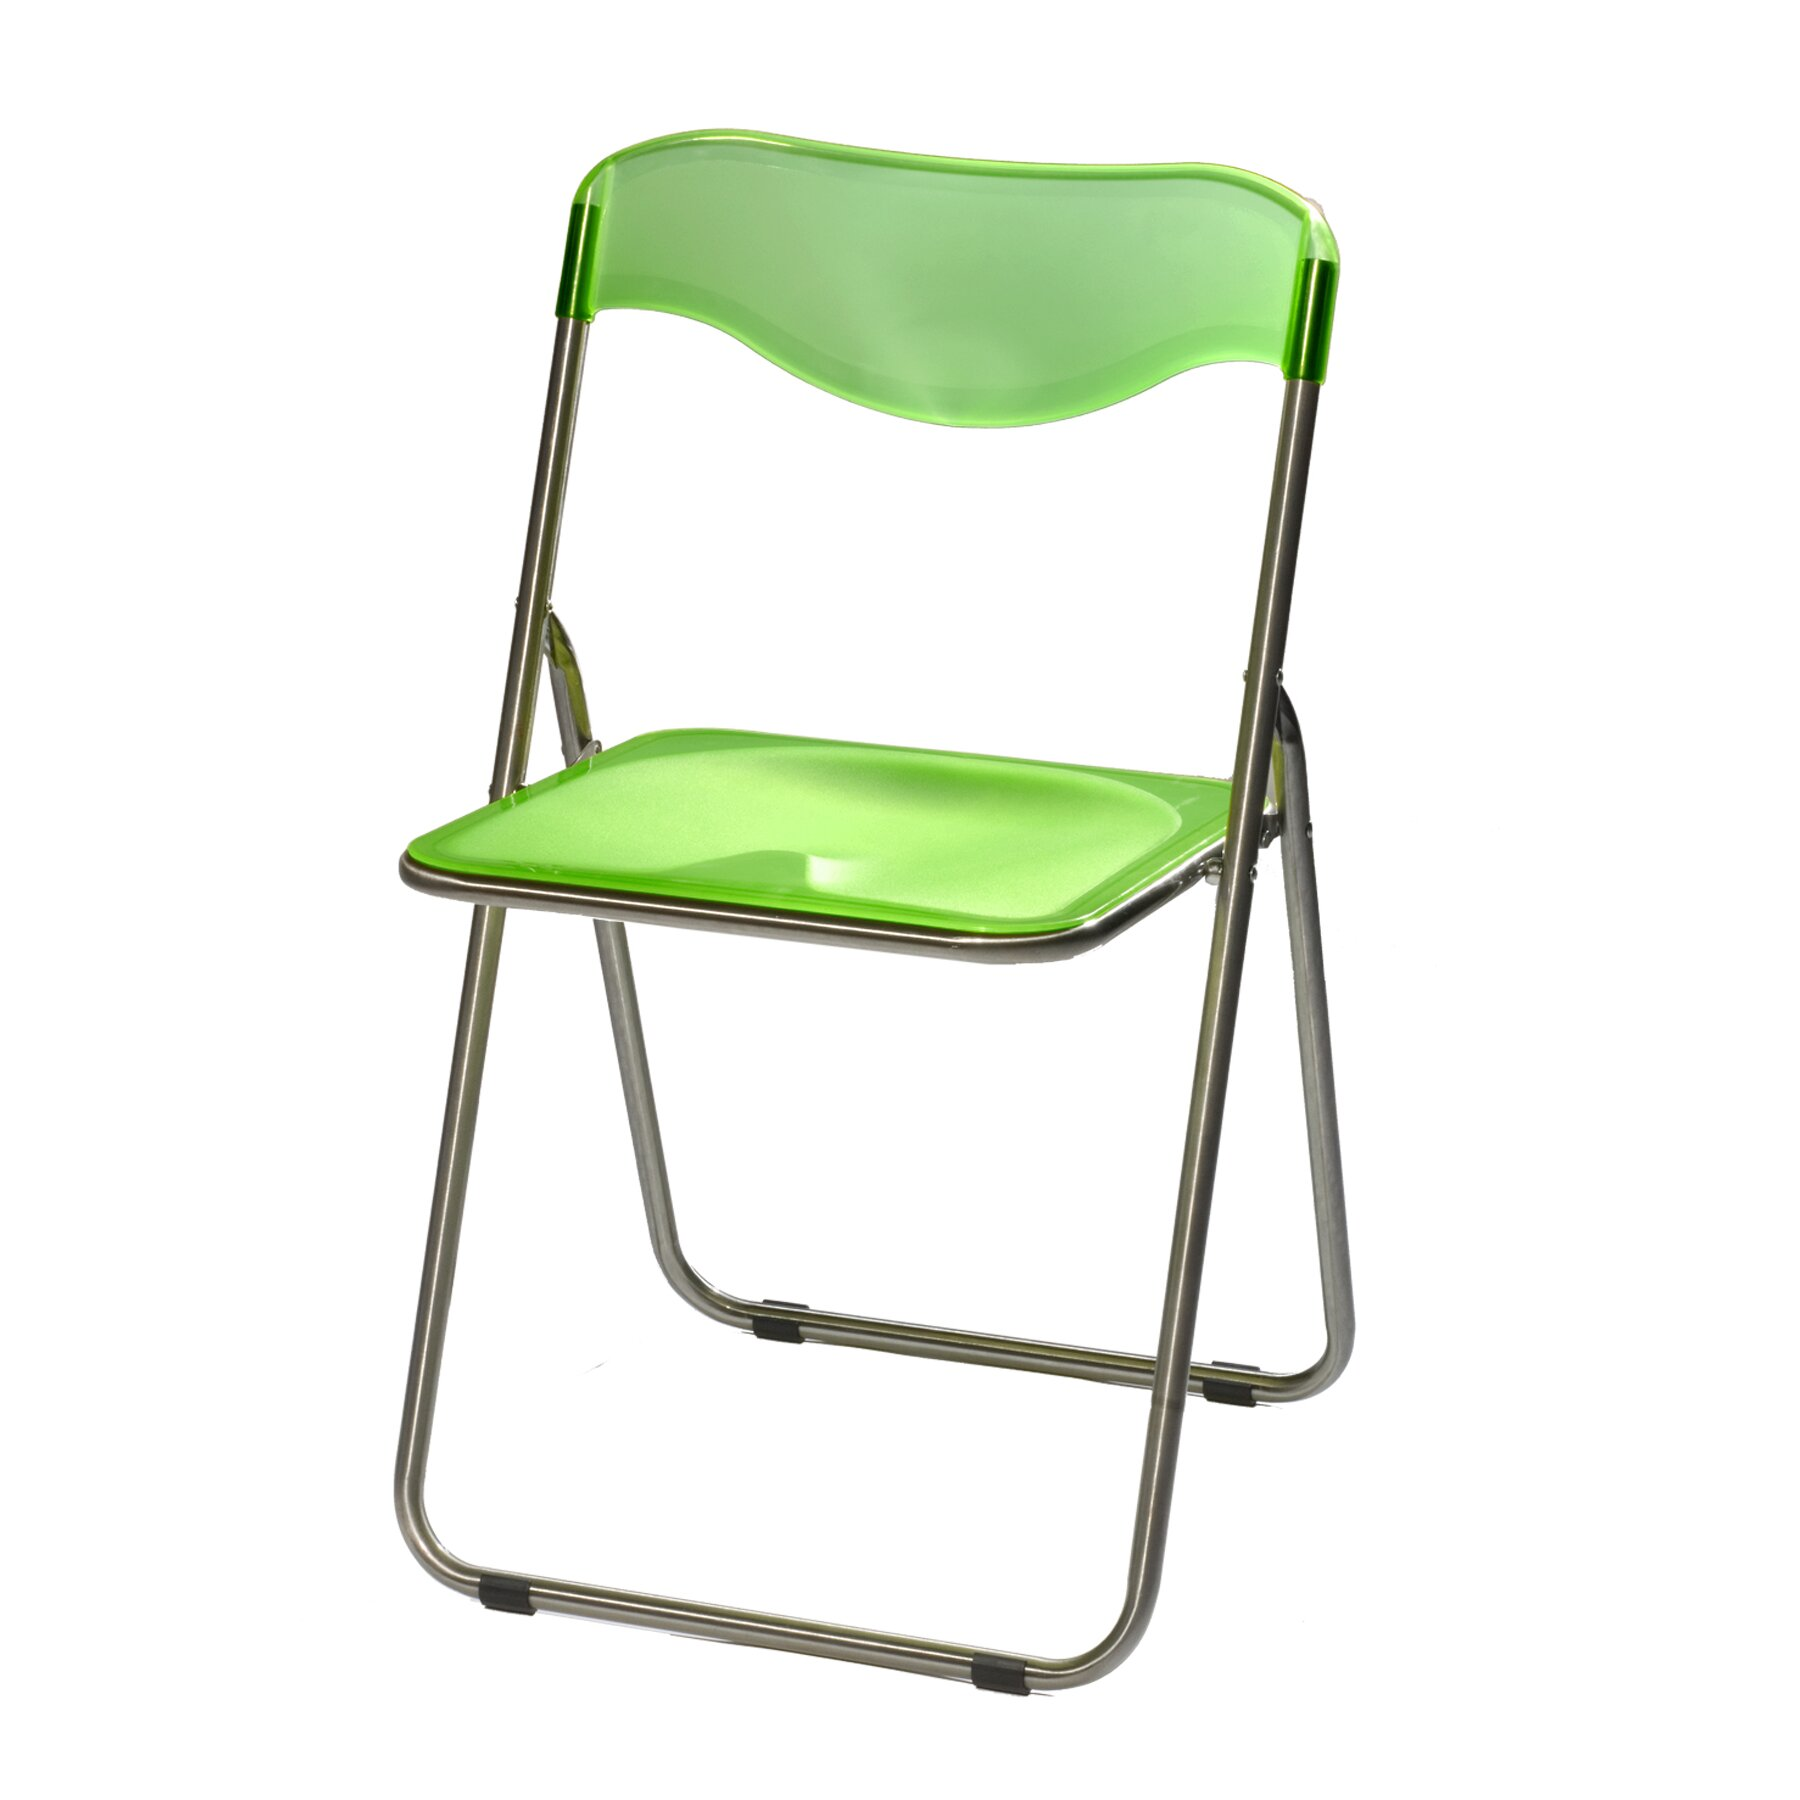 Meco Folding Table picture on Meco Translucent Folding Chair Sterling TPFC.5 MEC1047 with Meco Folding Table, Folding Table 0ab9f33daae59b935b88aea4921a6ed9